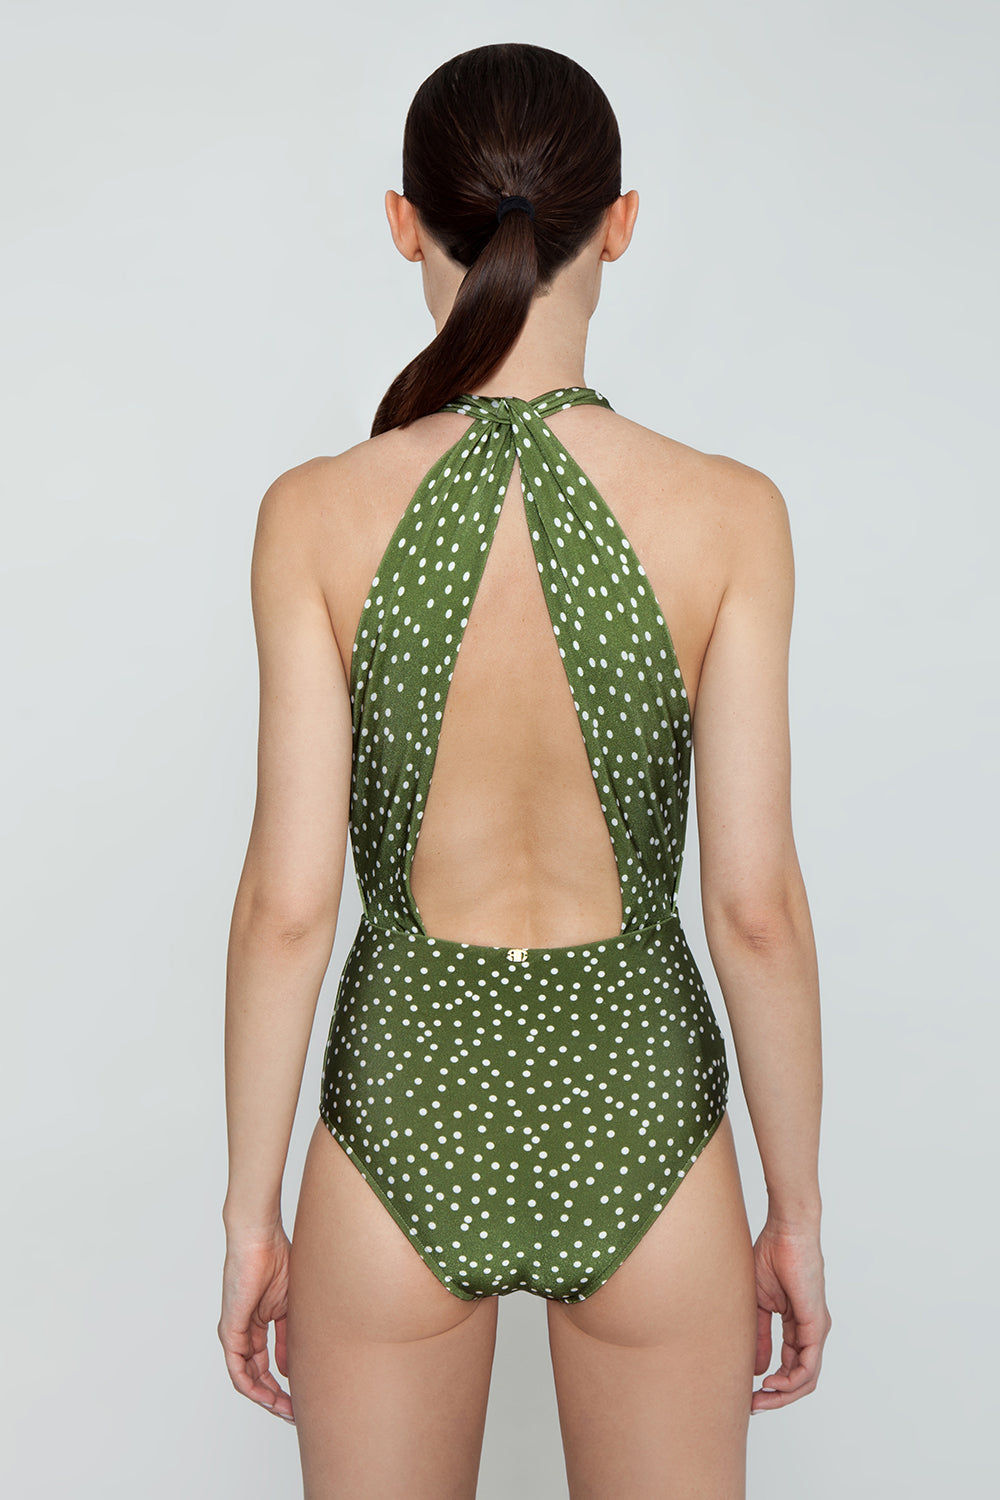 ADRIANA DEGREAS Plunging Halter Neck One Piece Swimsuit - Mille Punti Army Green Polka Dot Print One Piece | Mille Punti Army Green Polka Dot Print| ADRIANA DEGREAS Plunging Halter Neck One Piece Swimsuit - Mille Punti Army Green Polka Dot Print Plunging halter neck one piece swimsuit in army green polka dot print. Inspired by 1950s pin-up style, the halter neckline features flattering pleats and extra coverage at underarms. Fixed halter strap connects behind neck to wide draped straps Back View